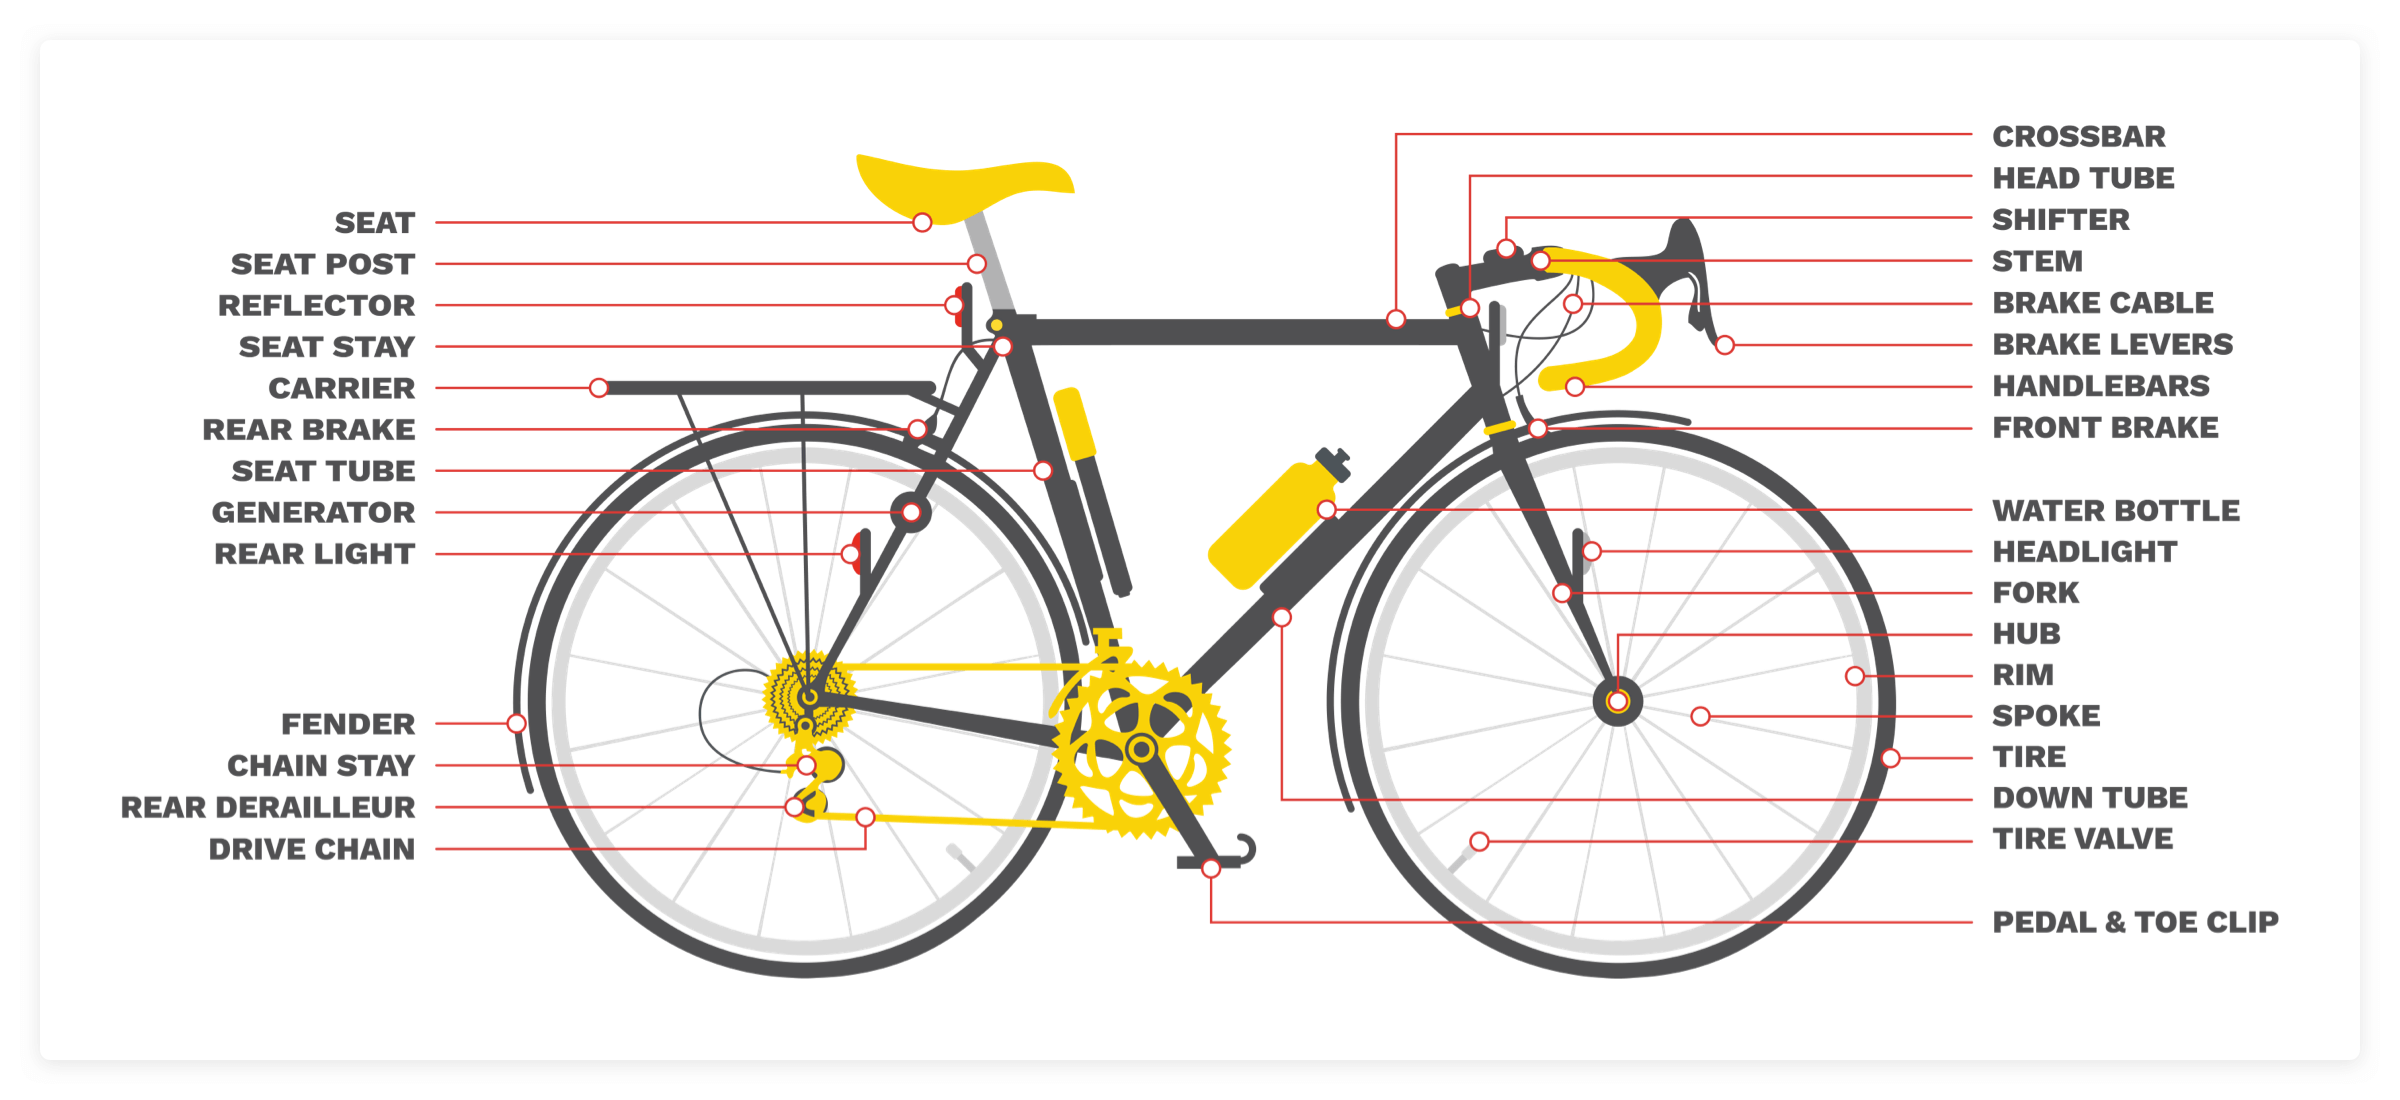 Bike Terminology: Getting to know bike parts